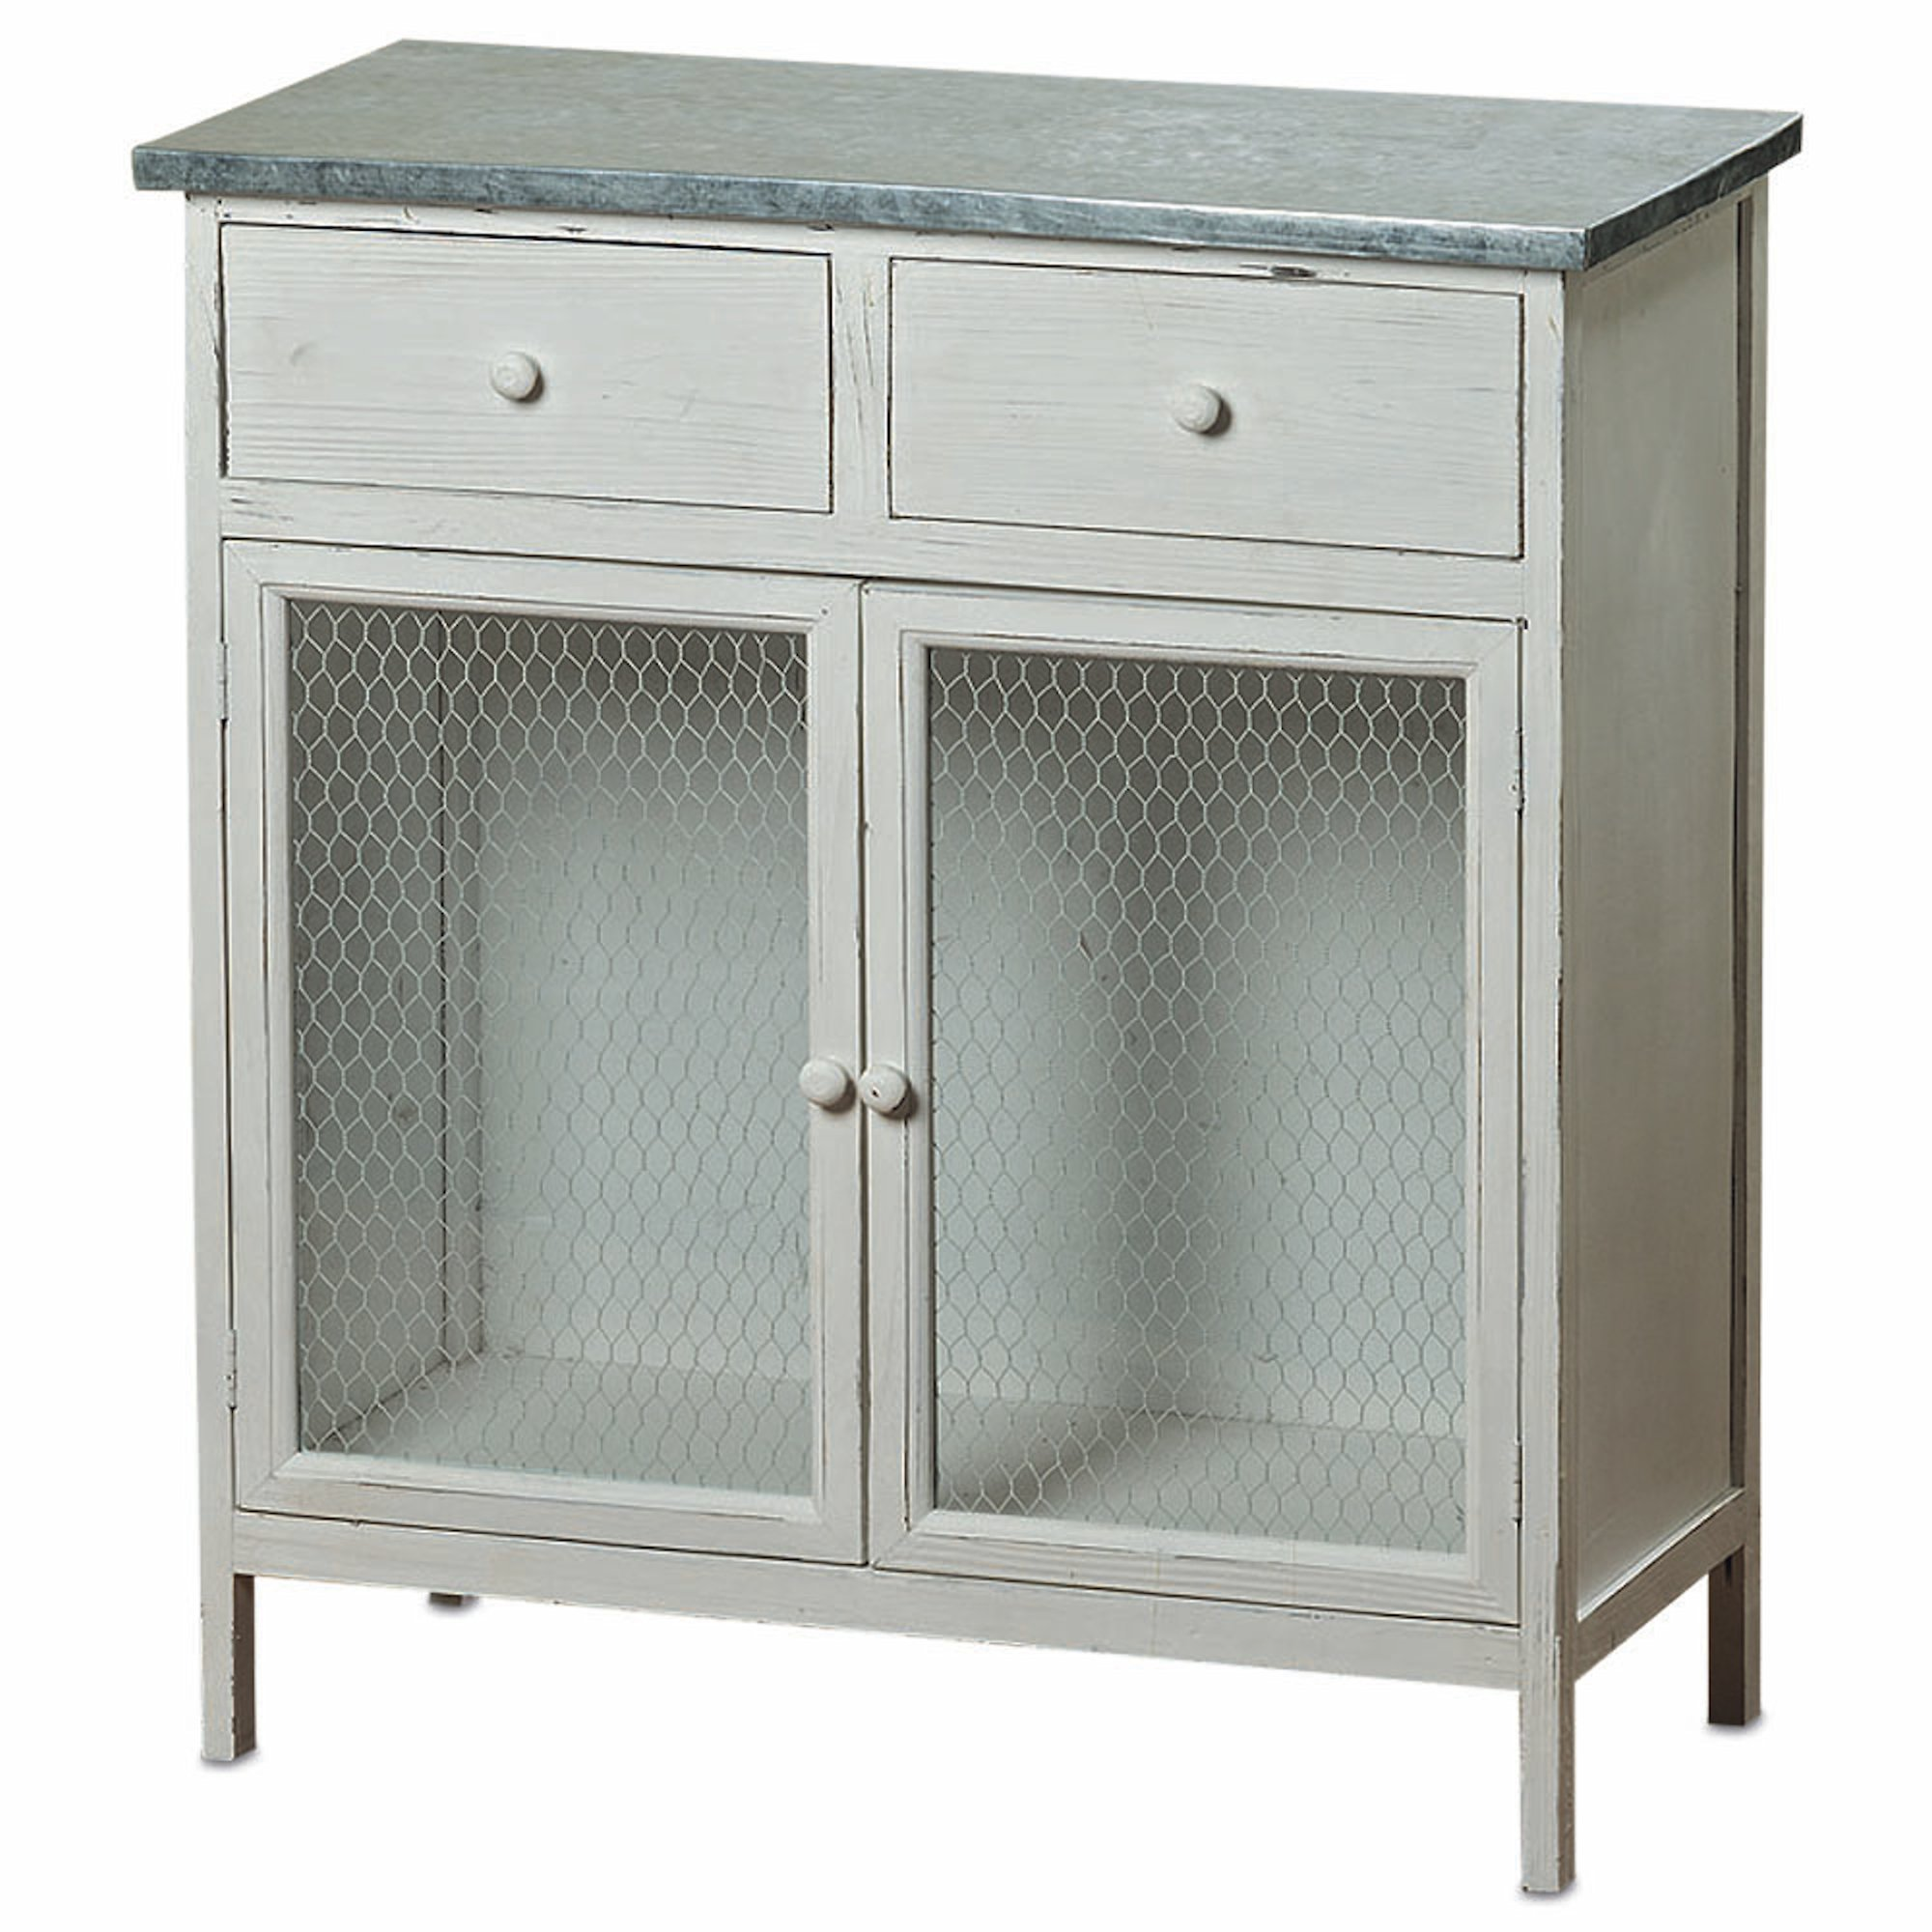 The Farmer's Market Shabby Commode Cabinet, 2 Drawers, Galvanized Metal, Chicken Wire, Distressed Rustic Finish, White Stained Sustainable Wood, 29 ½ L x 13 ¾ W x 32 ¾ H Inches. By Whole House Worlds